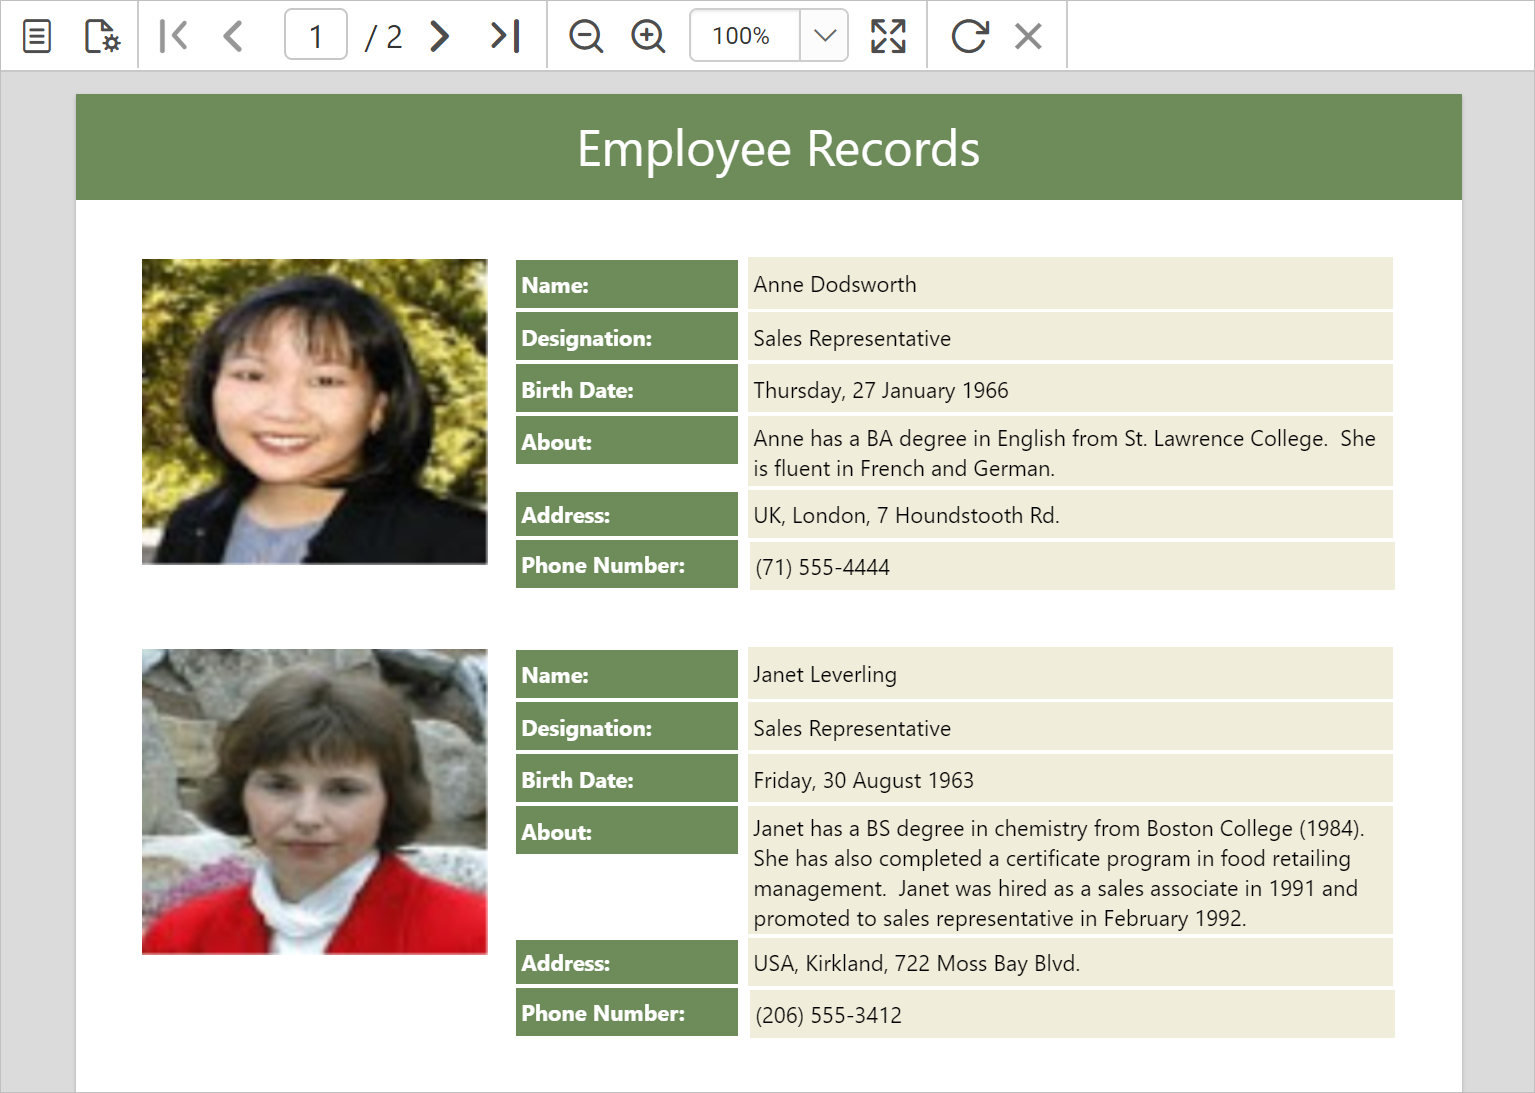 Preview: Employee Records in Mail-Merge Format